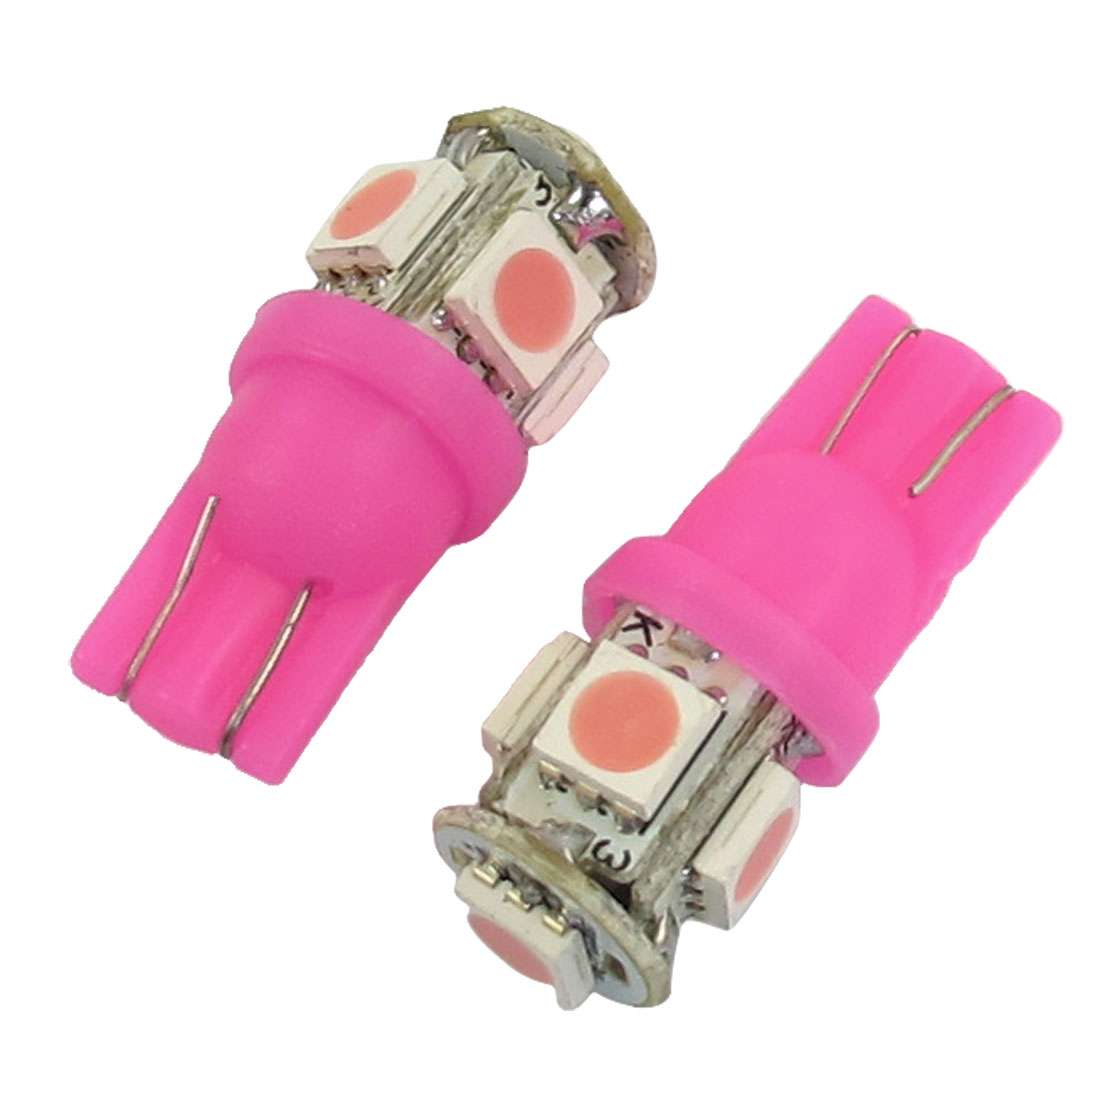 2-x-T10-194-168-W5W-Pink-5050-SMD-5-LED-Car-Light-Bulb-lamp-12V